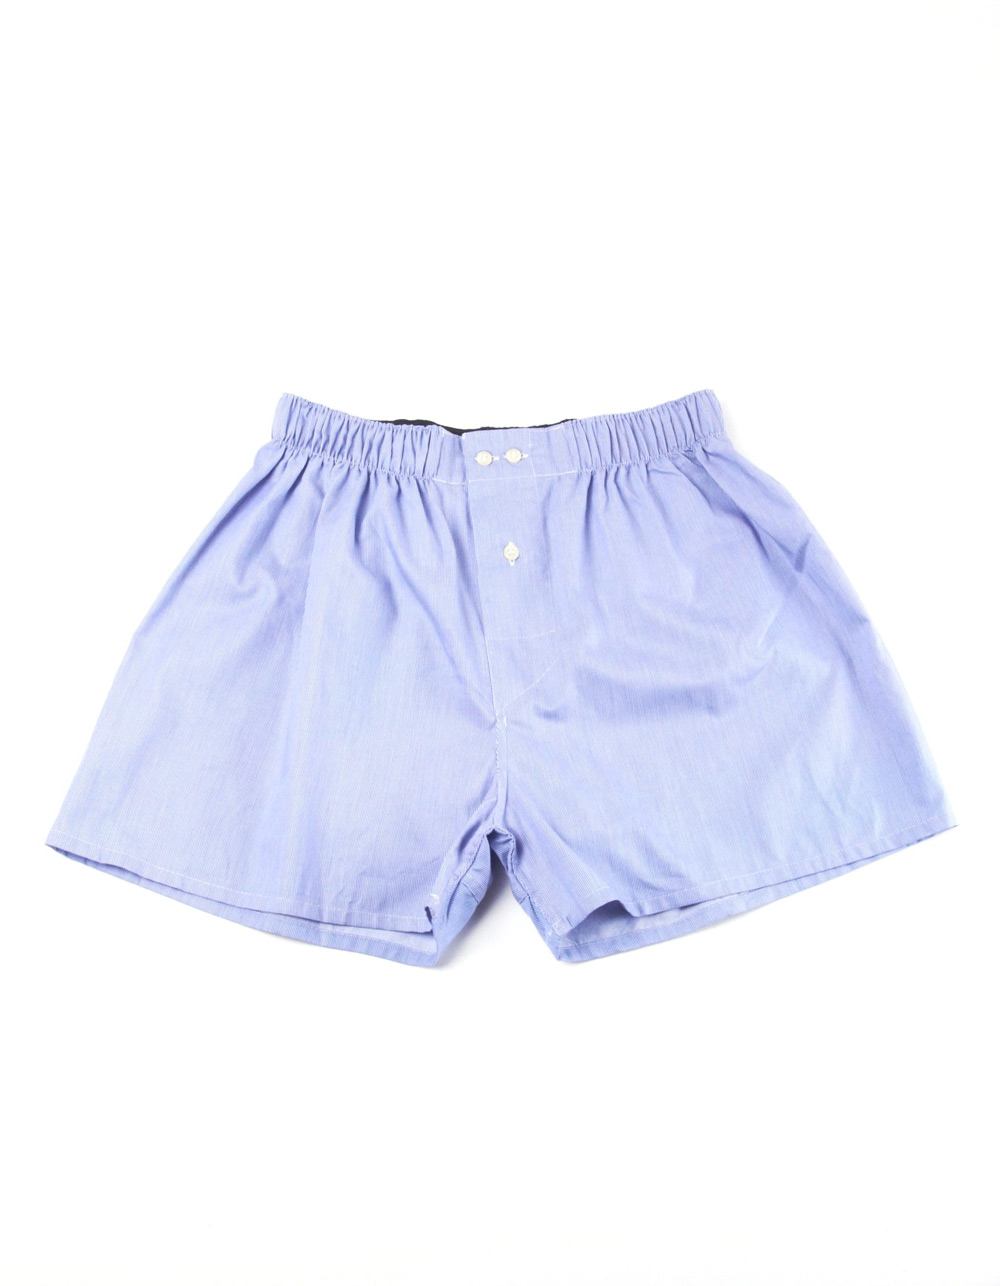 Blue micro stripes boxer shorts